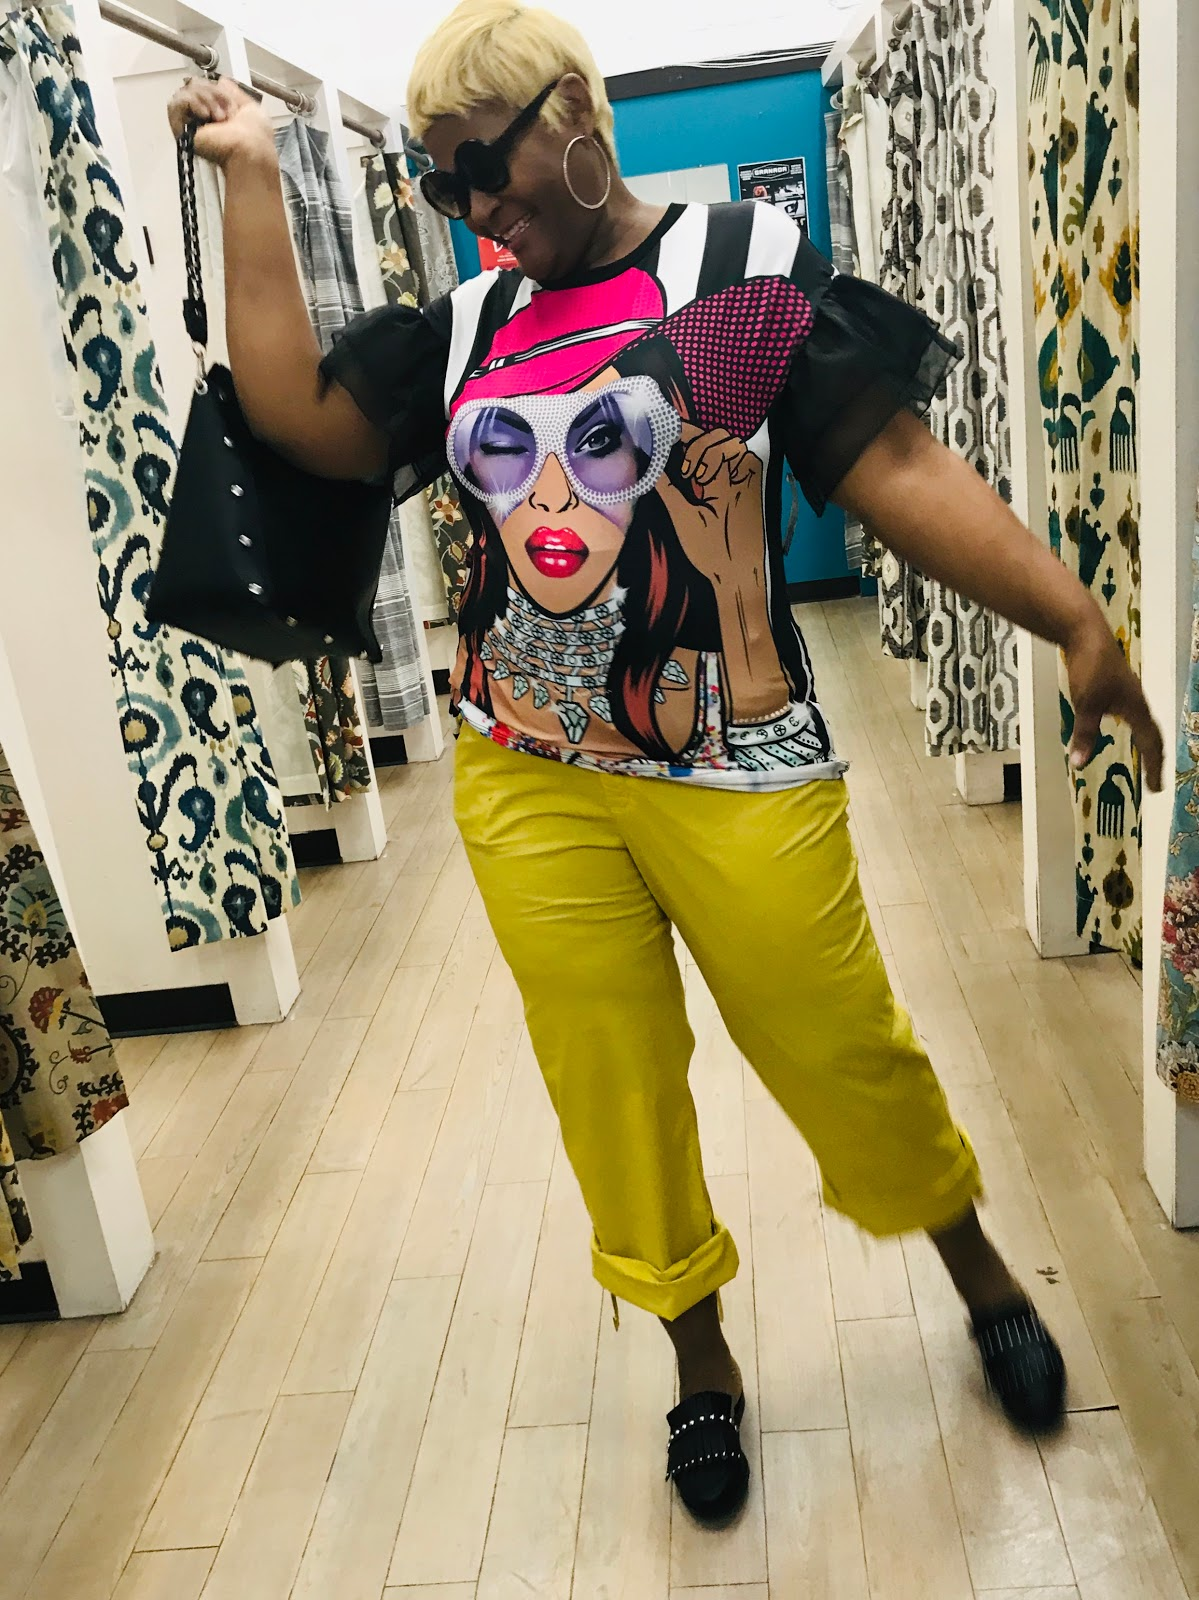 Image: Woman trying on clothes at the buffalo exchange thrift store. I've been invited to a lot of things but never to a worst dressed New Years Party. What in the world do you wear and who came up with this idea? Nonetheless, I am excited about attending something different that is fun for adults to enjoy. #NewYear2019